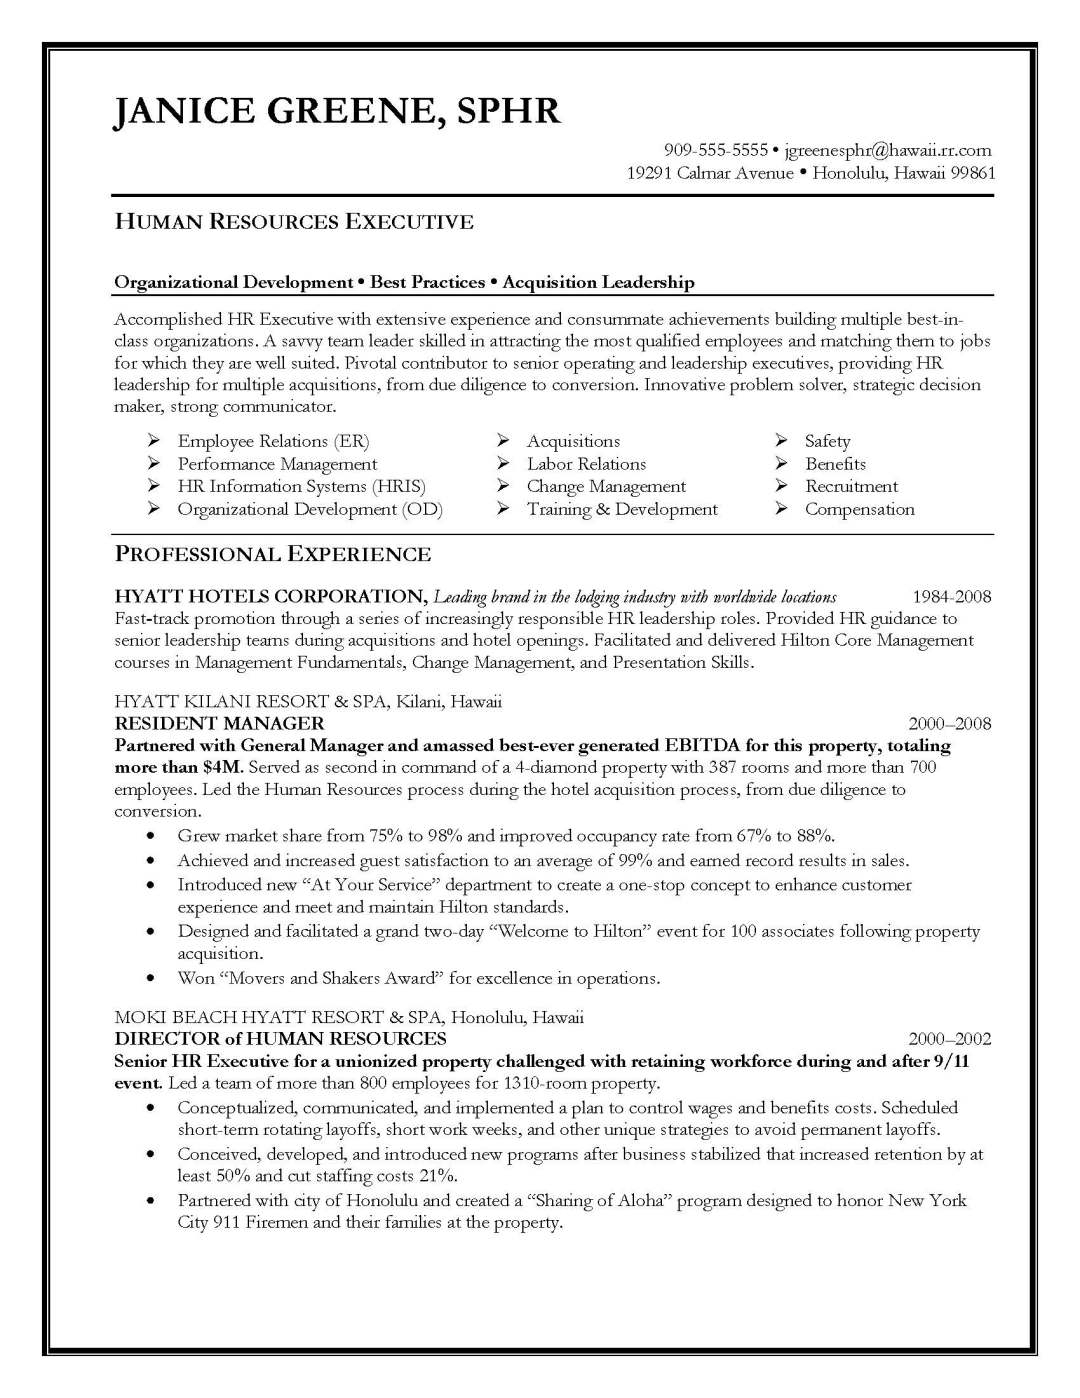 Cover Letter Template for Human Resources - Self Employed Cover Letter 23 Hr Business Partner Cover Letter